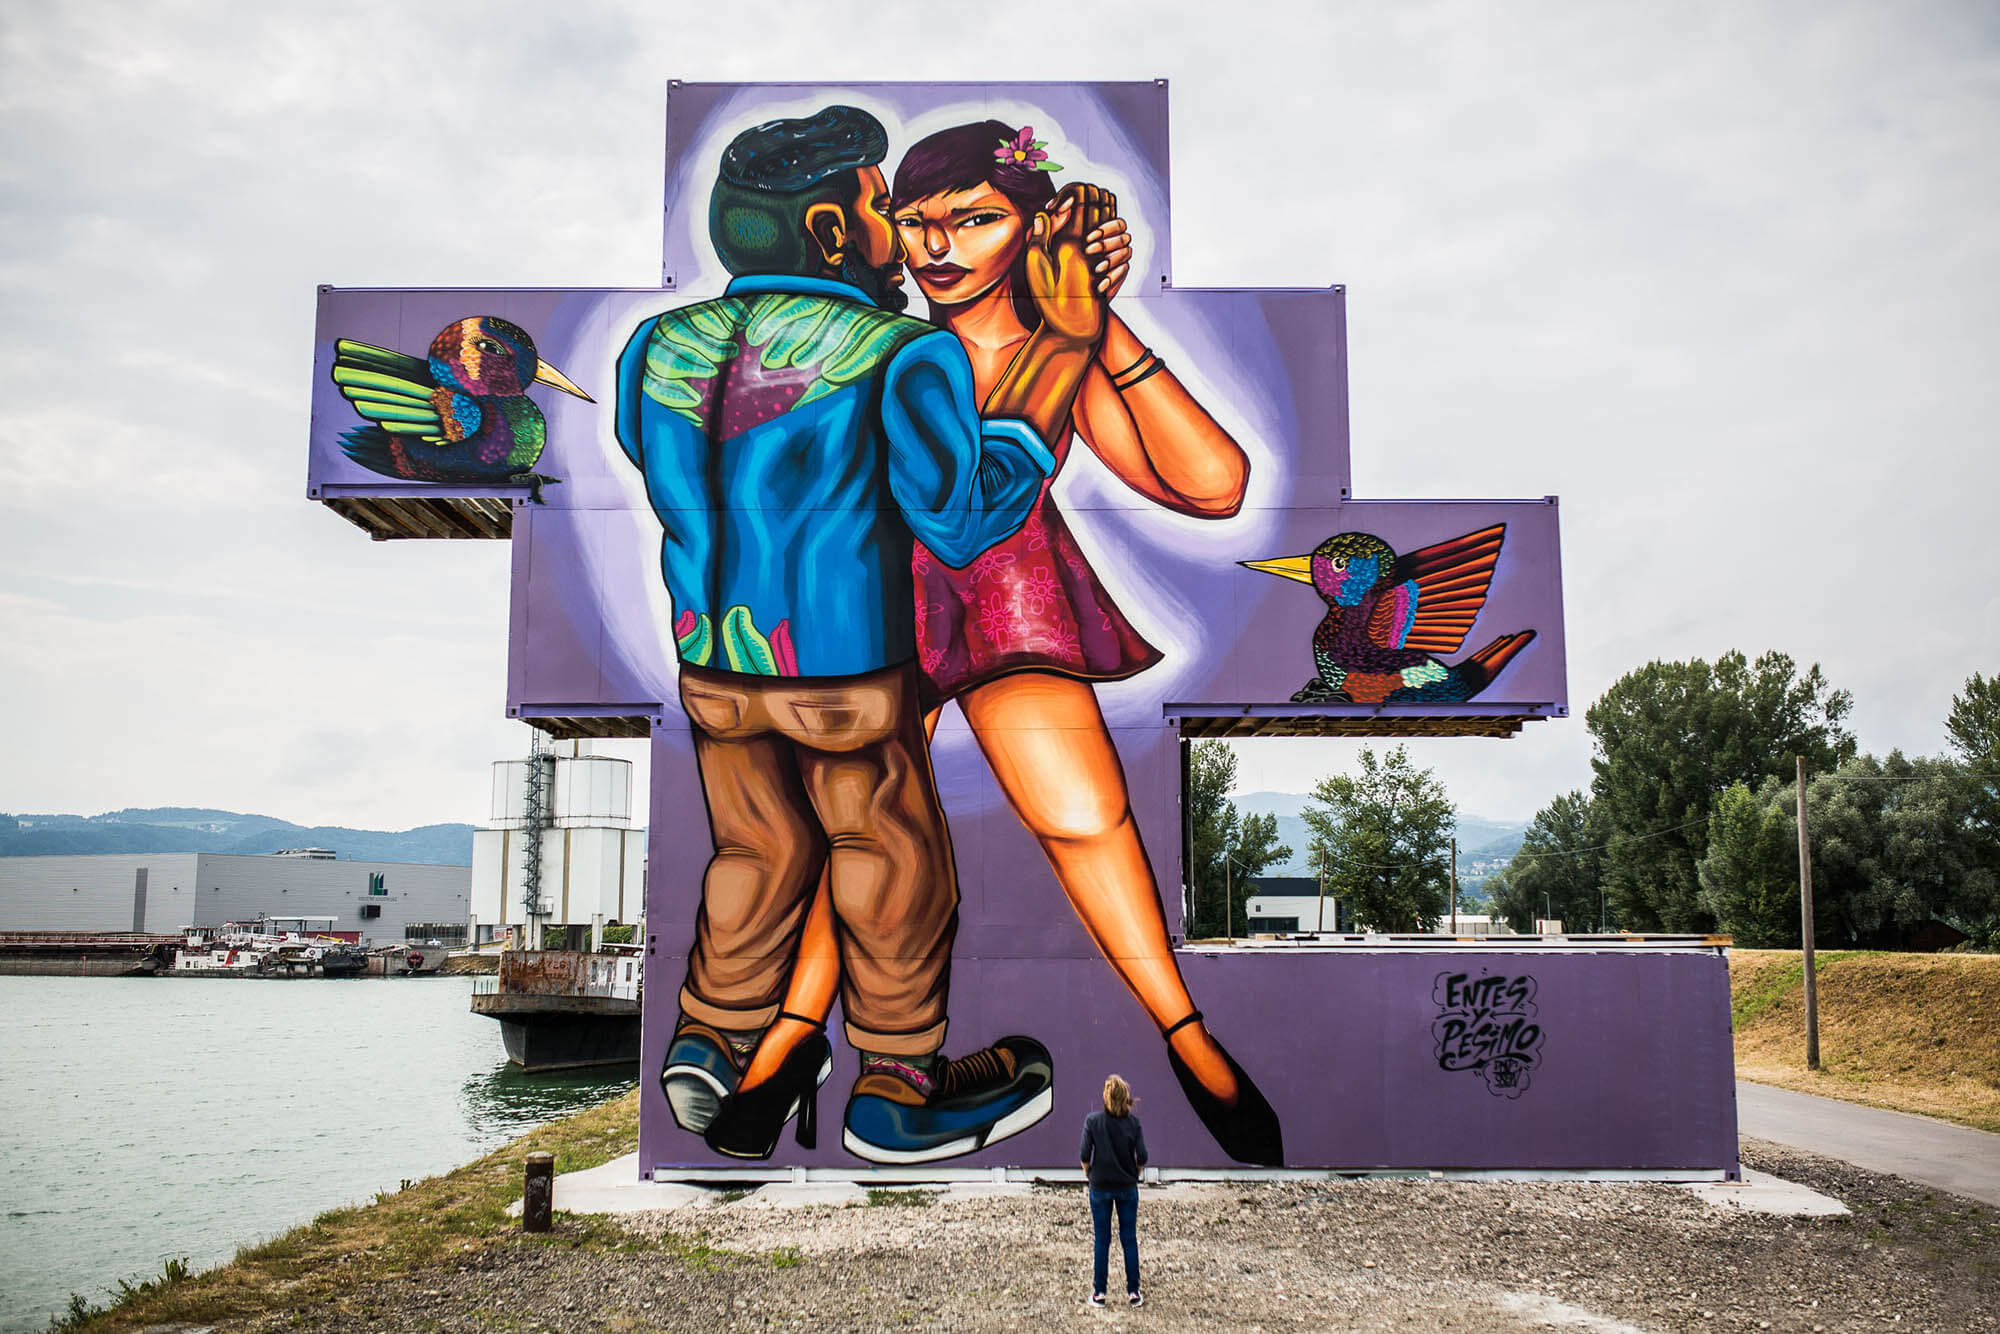 mural harbor graffiti linz austria entes y pesimo flap photography fotograf philipp greindl photographer